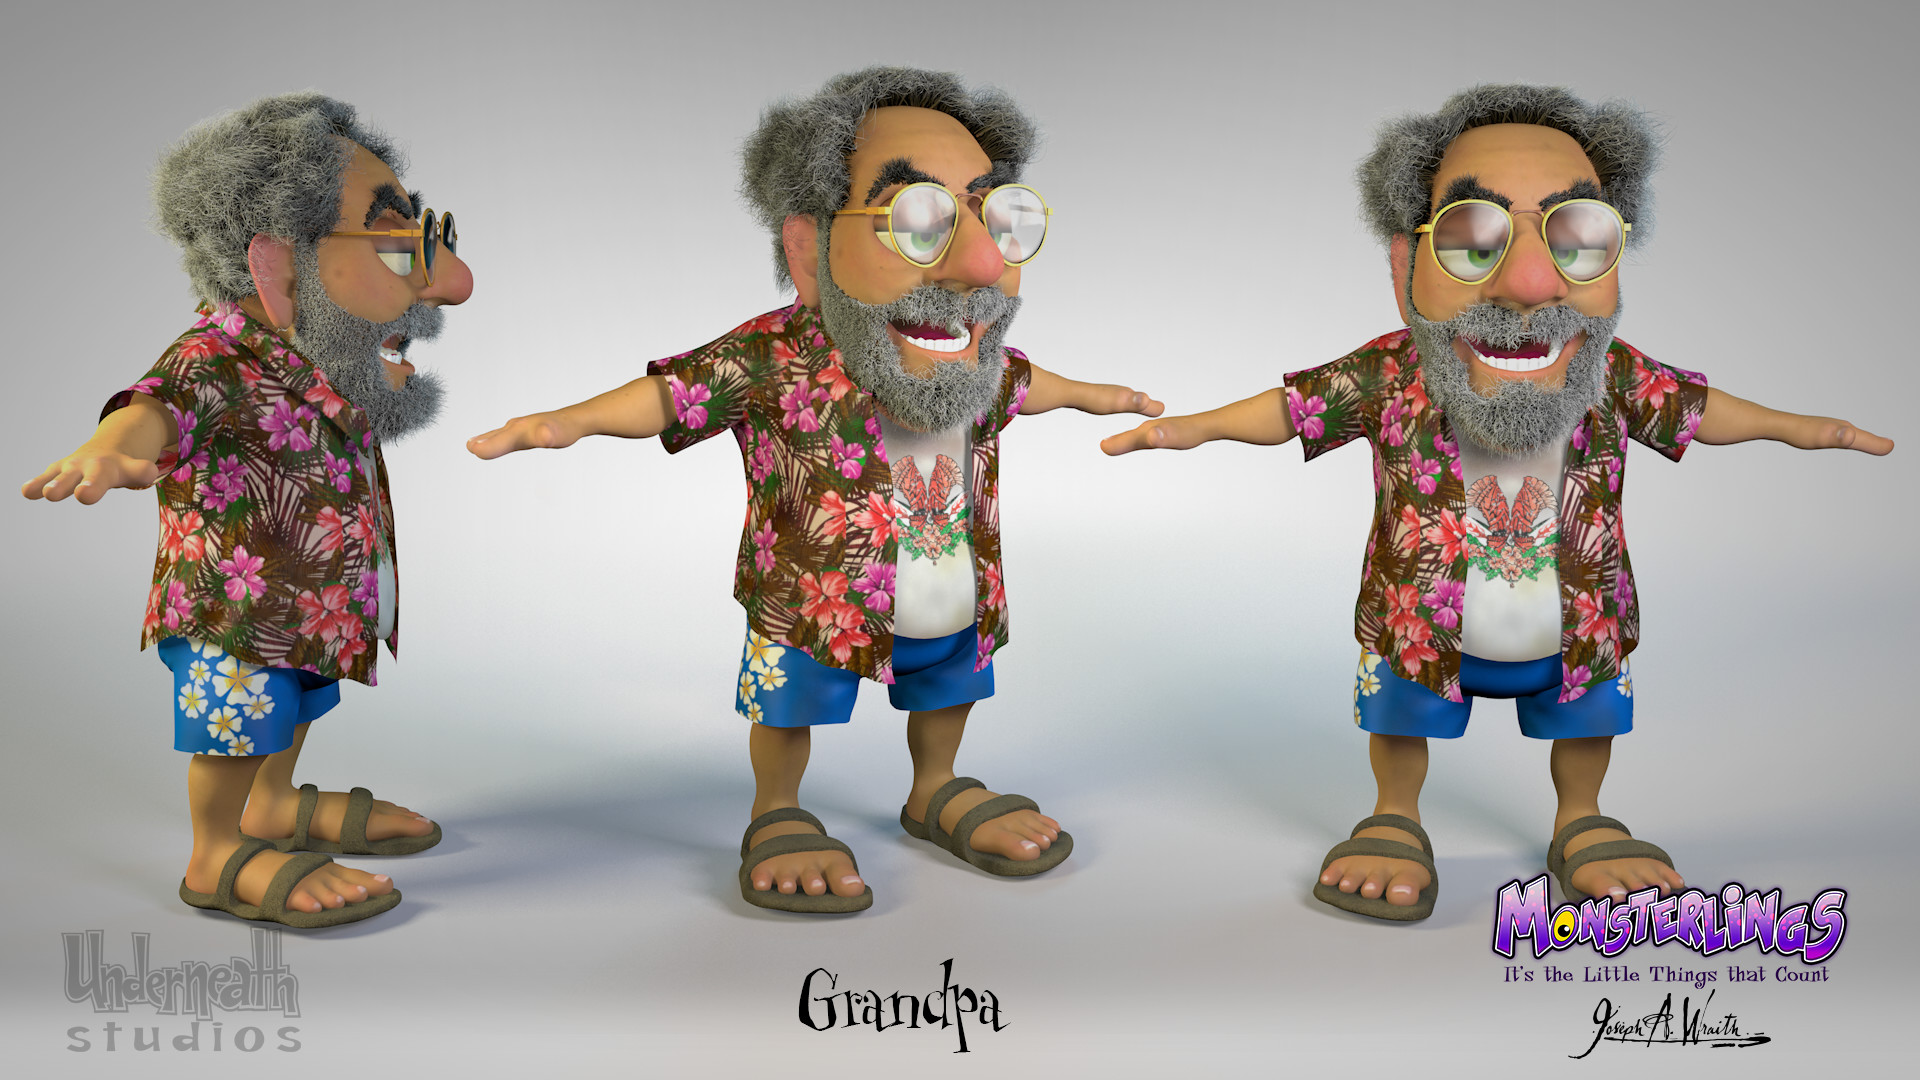 Monsterlings - Grandpa Character